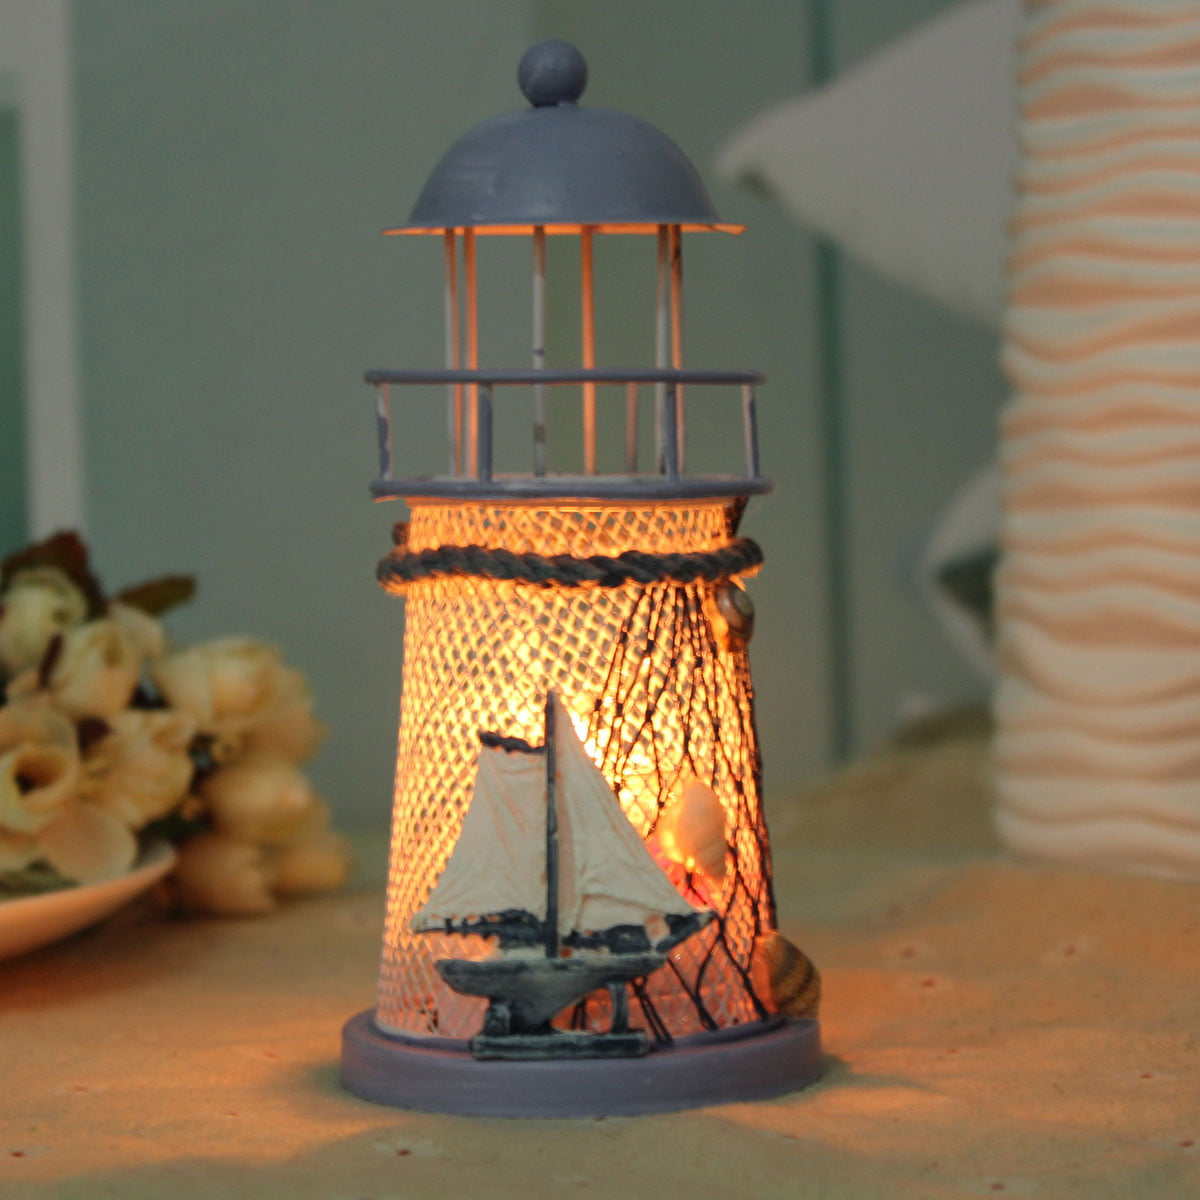 Mediterranean Iron Light House Candlestick Candle Holders Tealight Decor Gifts